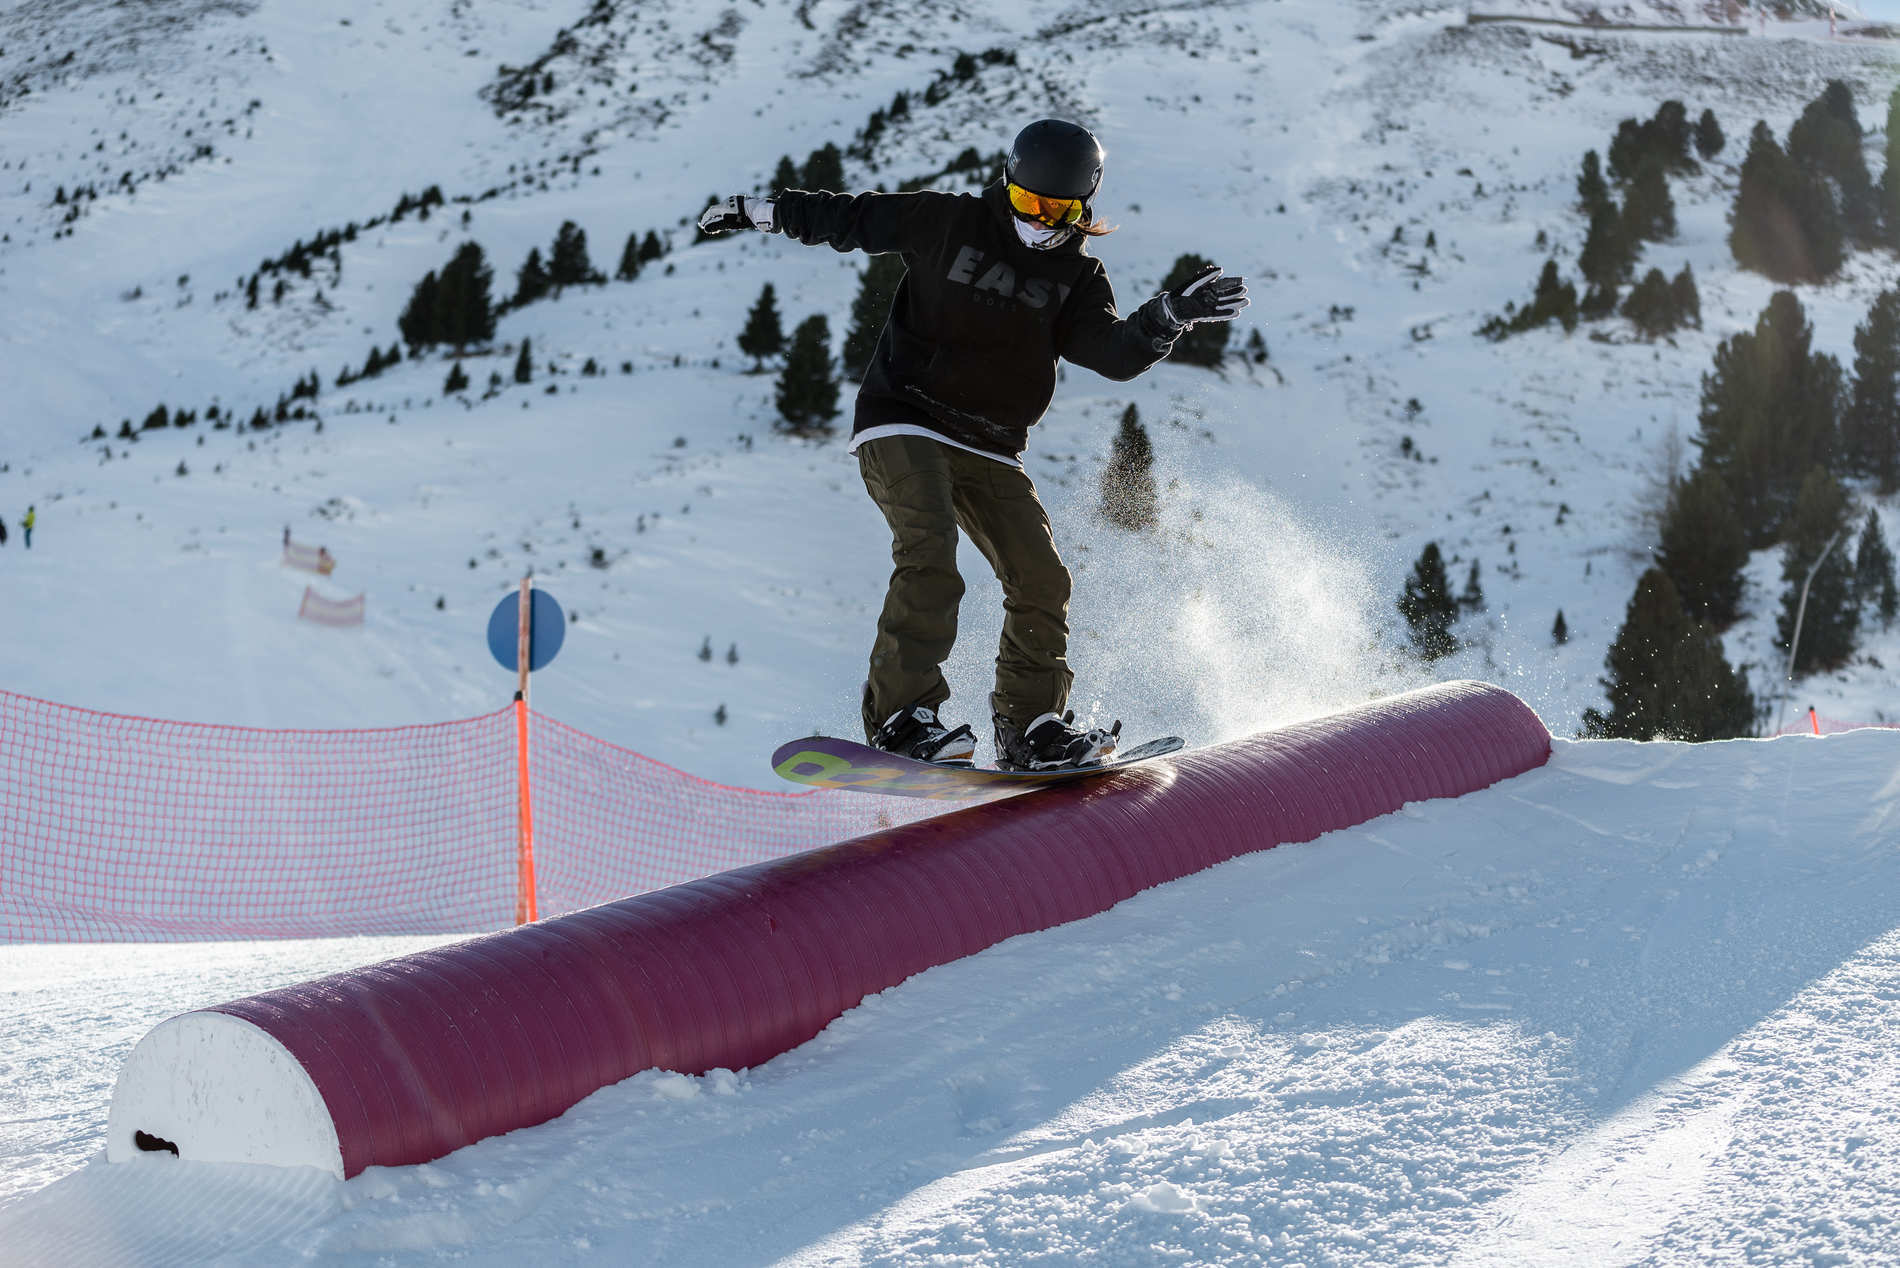 web obergurgl 29 01 2017 action sb fiona fogell christian riefenberg qparks 2